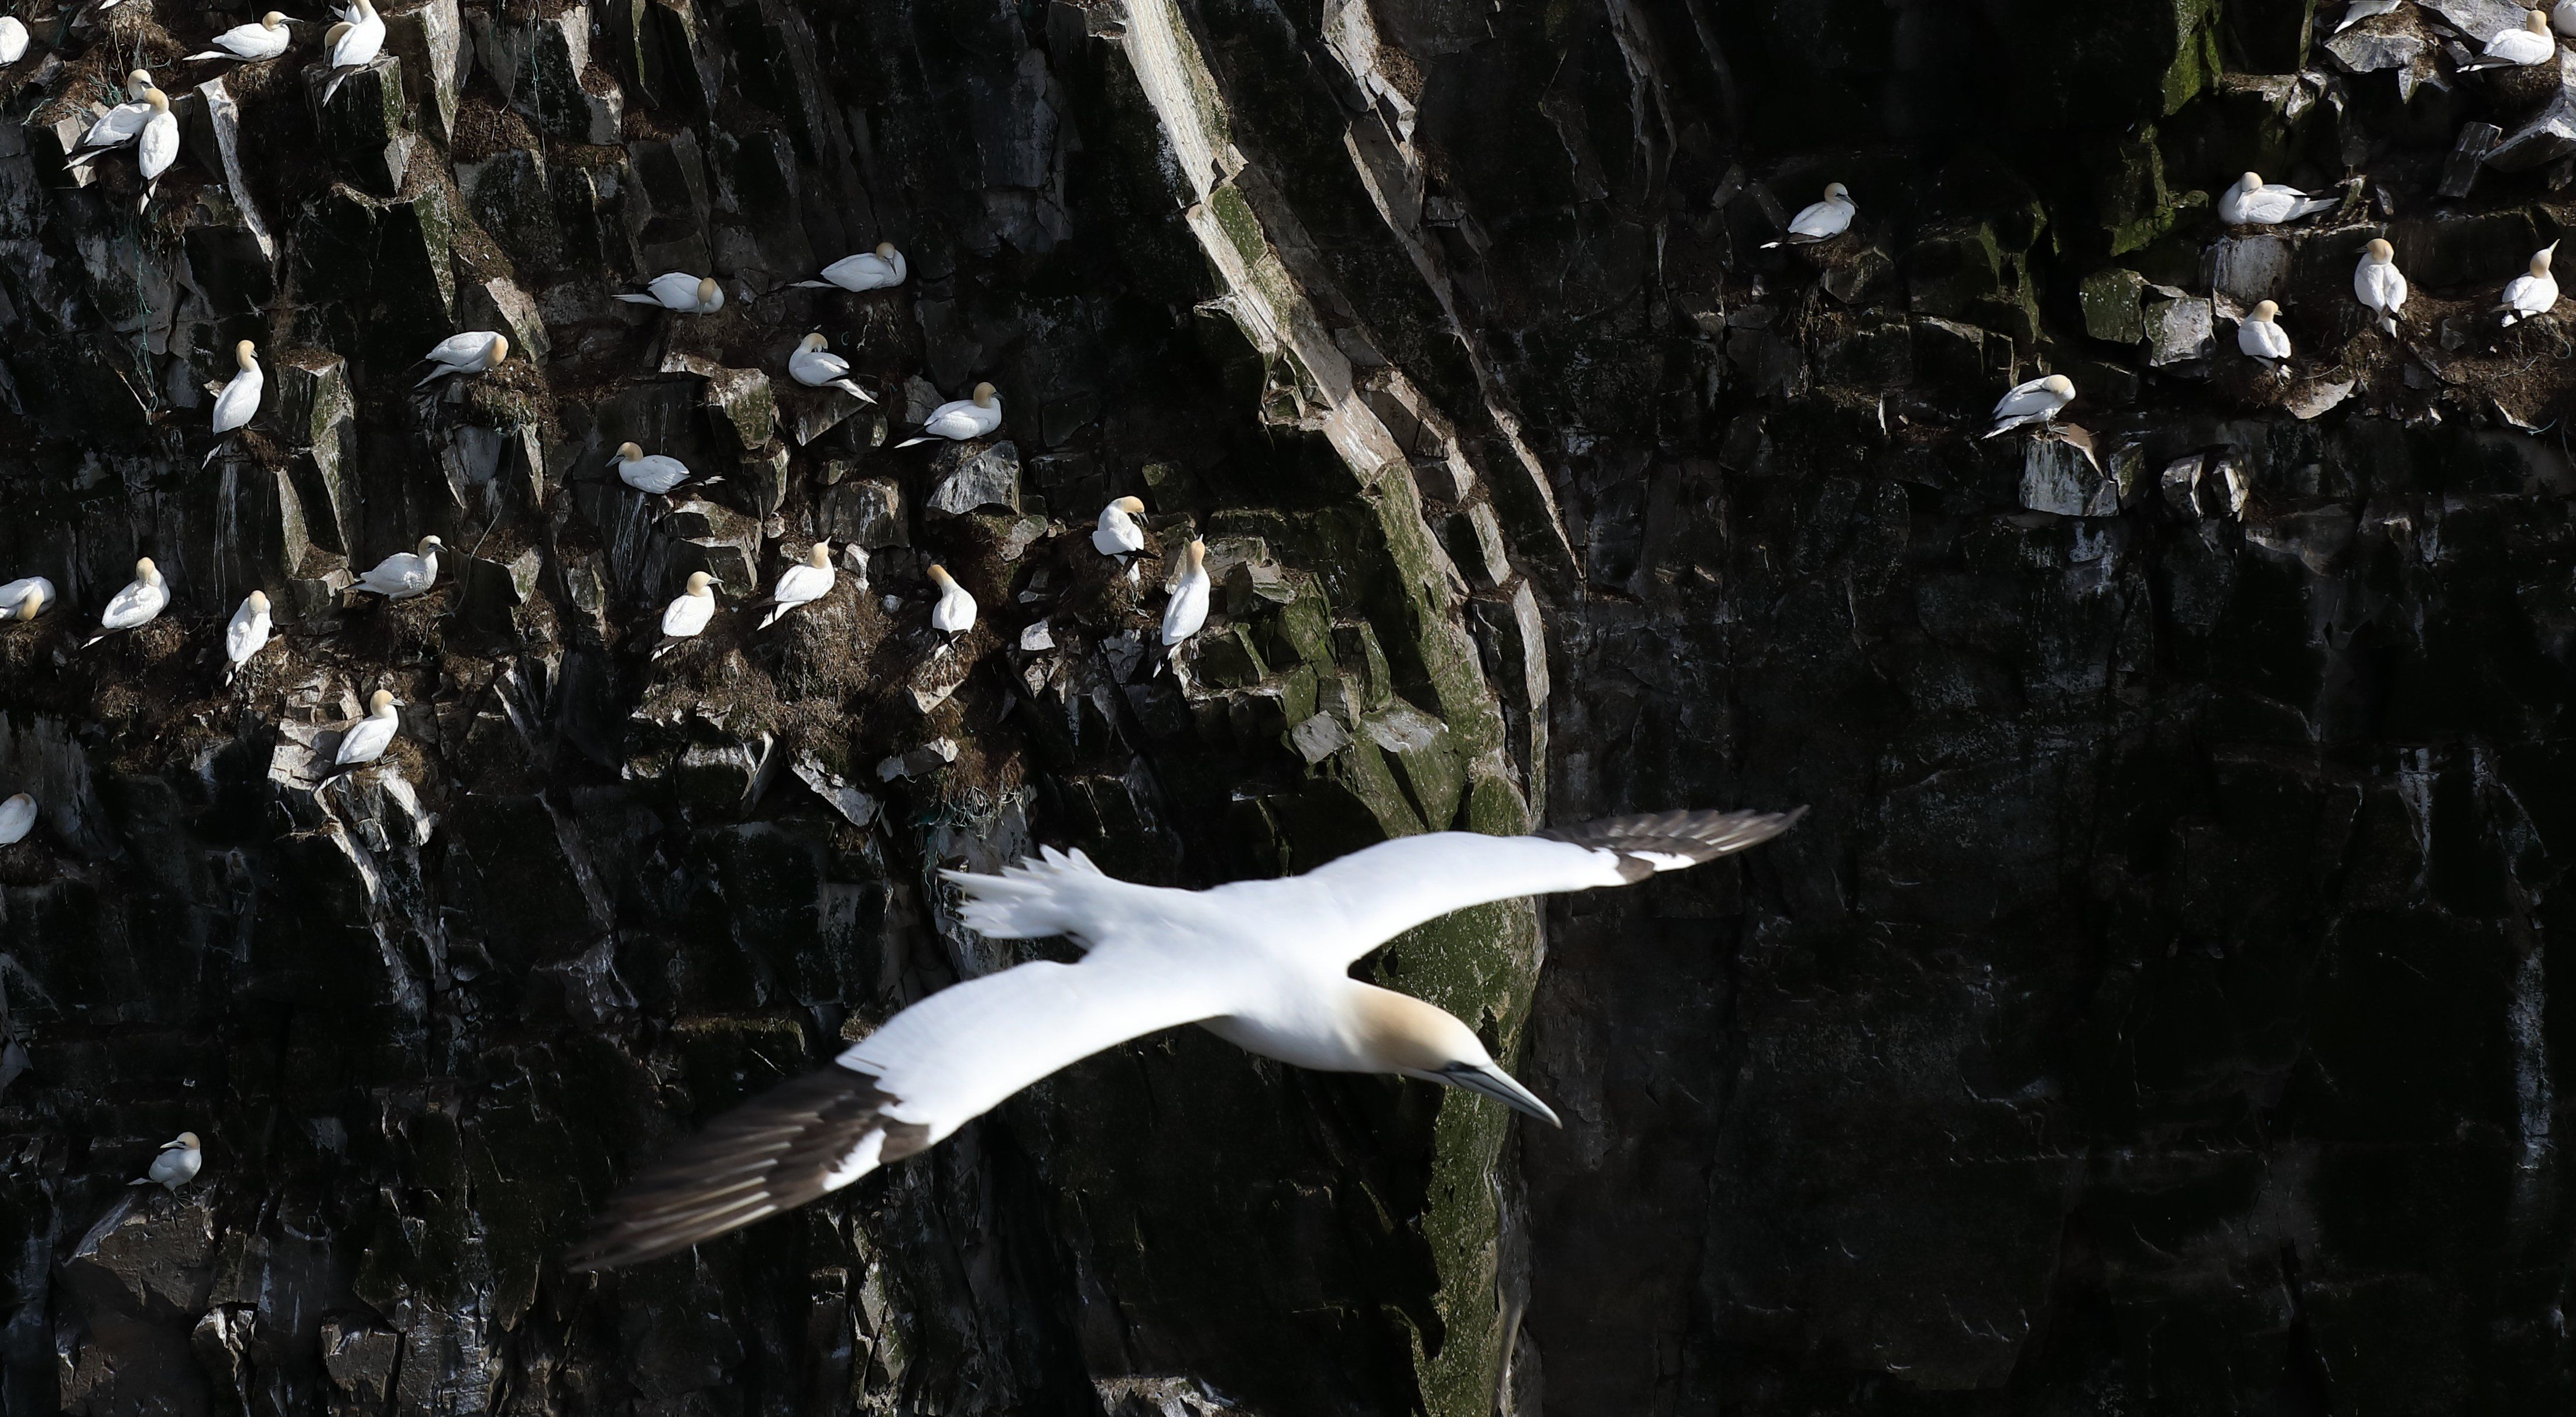 Seagull flying edge of cliff close up shot